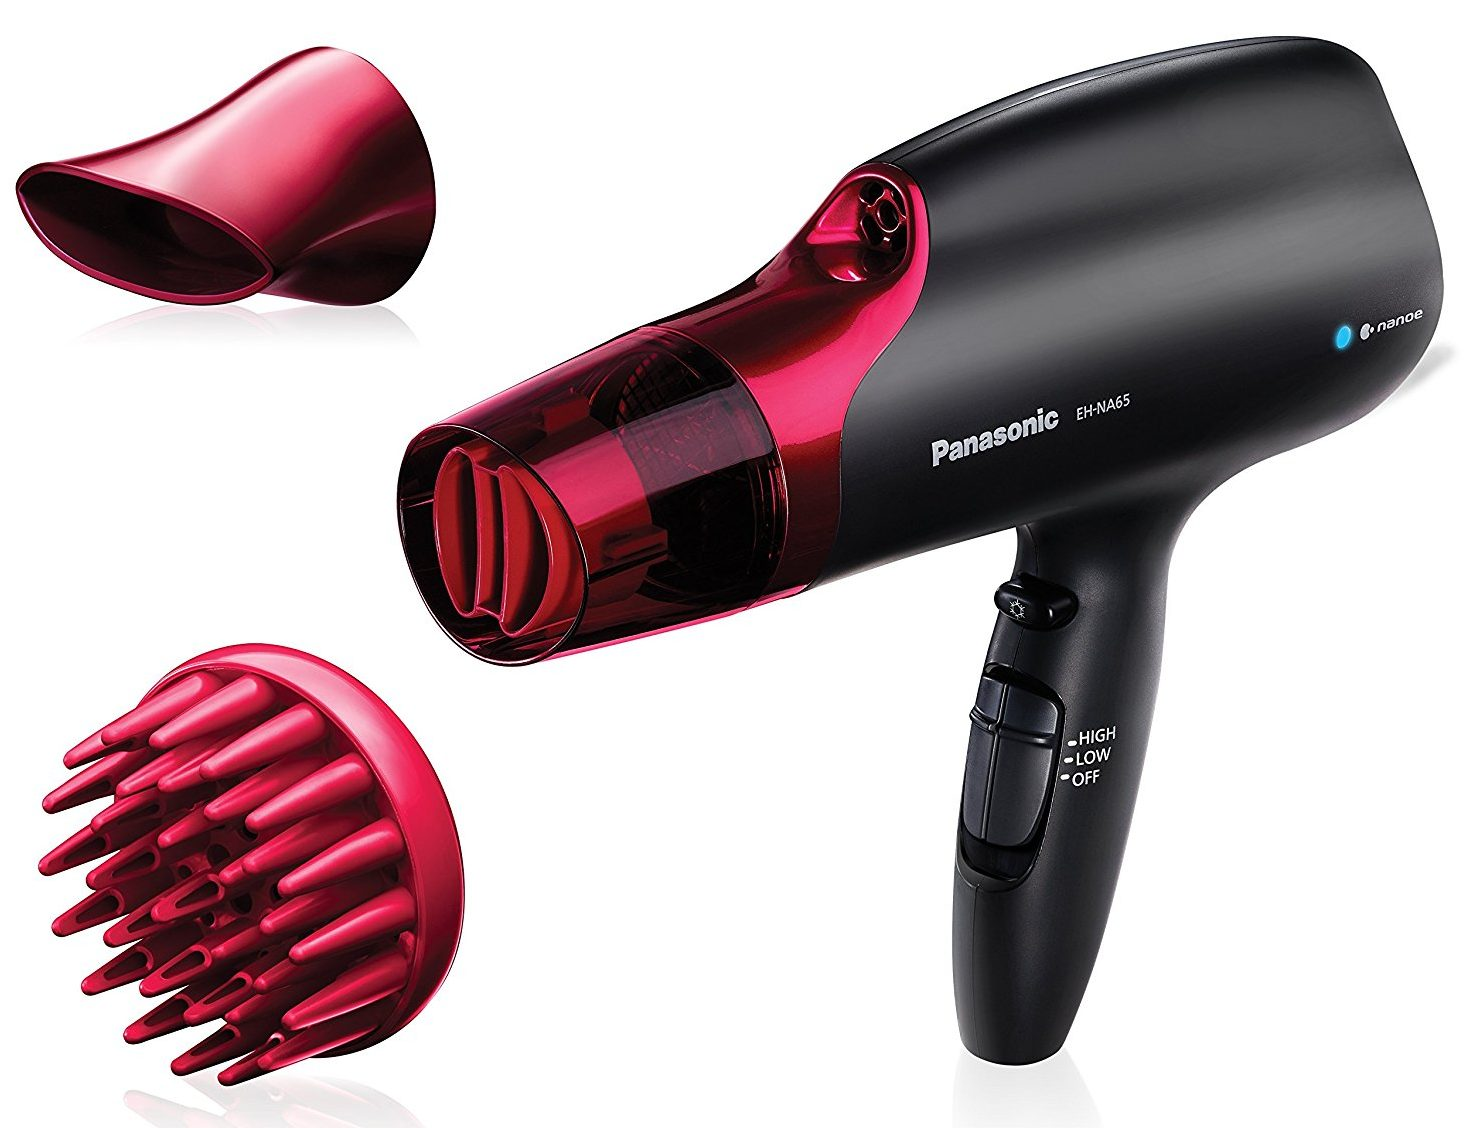 Best Hair Dryer Under 200 Top Rated Models With Good